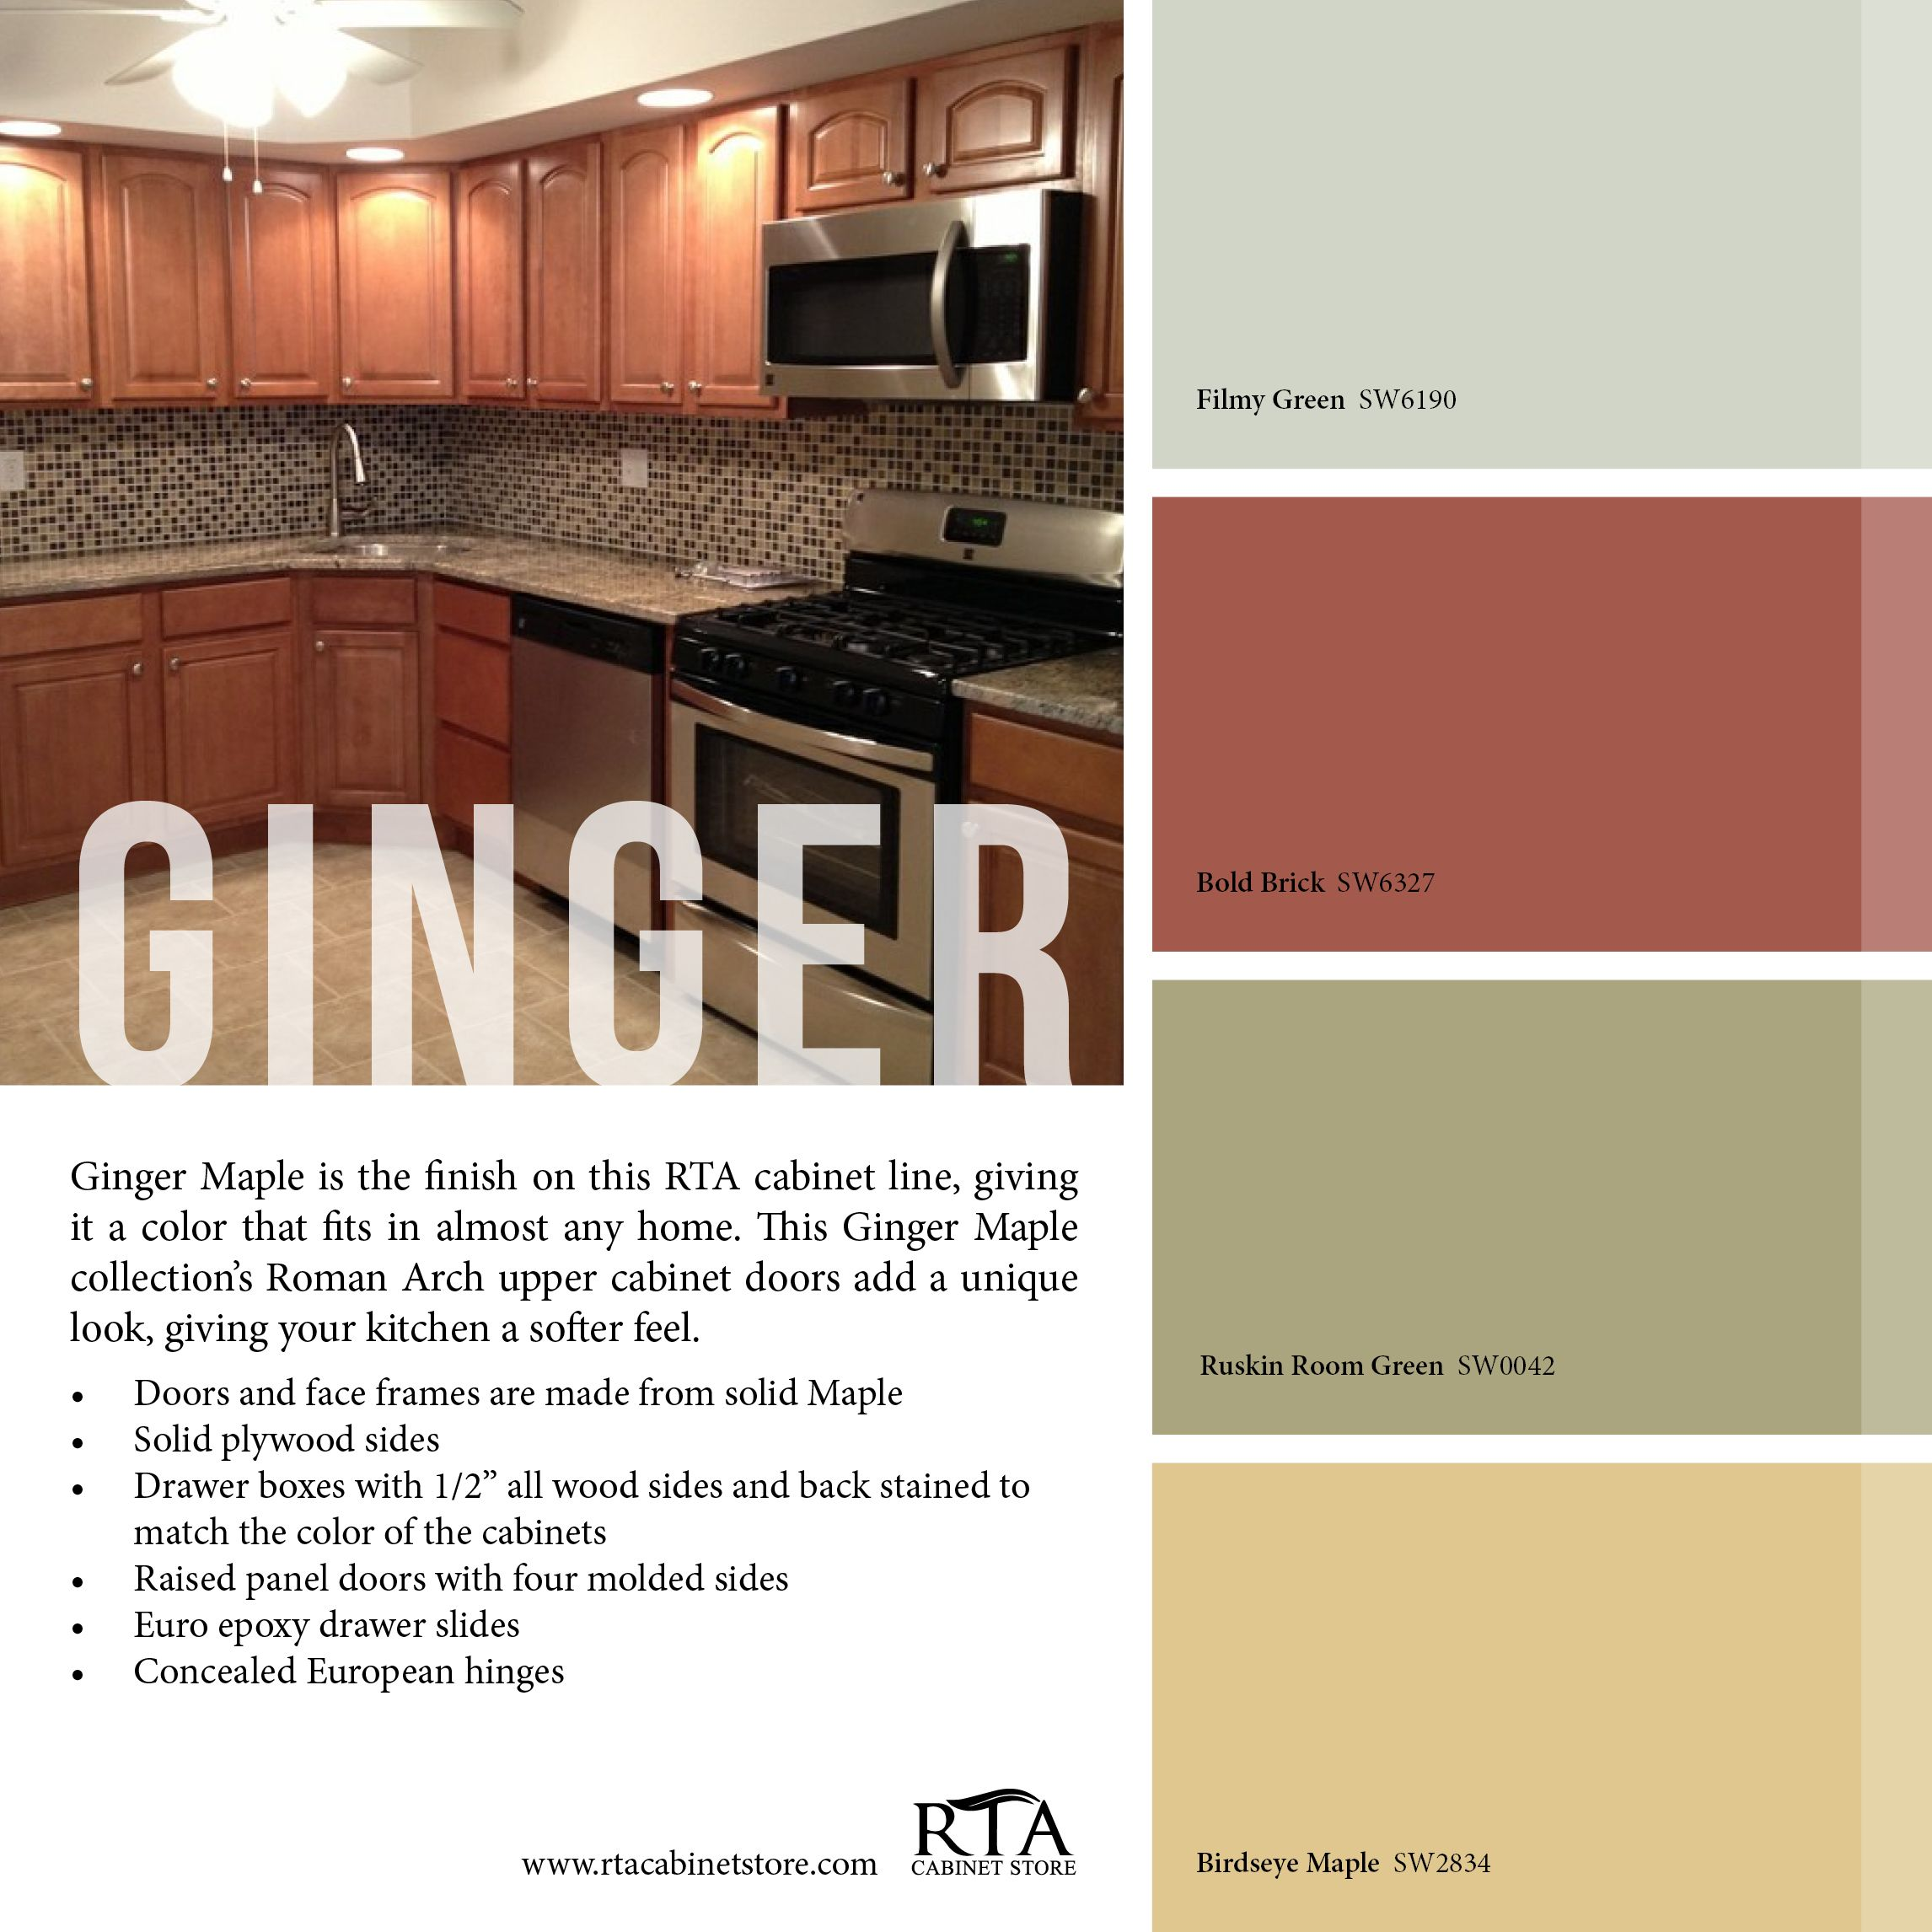 What colors are in the zen palate - Color Palette To Go With Our Ginger Maple Kitchen Cabinet Line